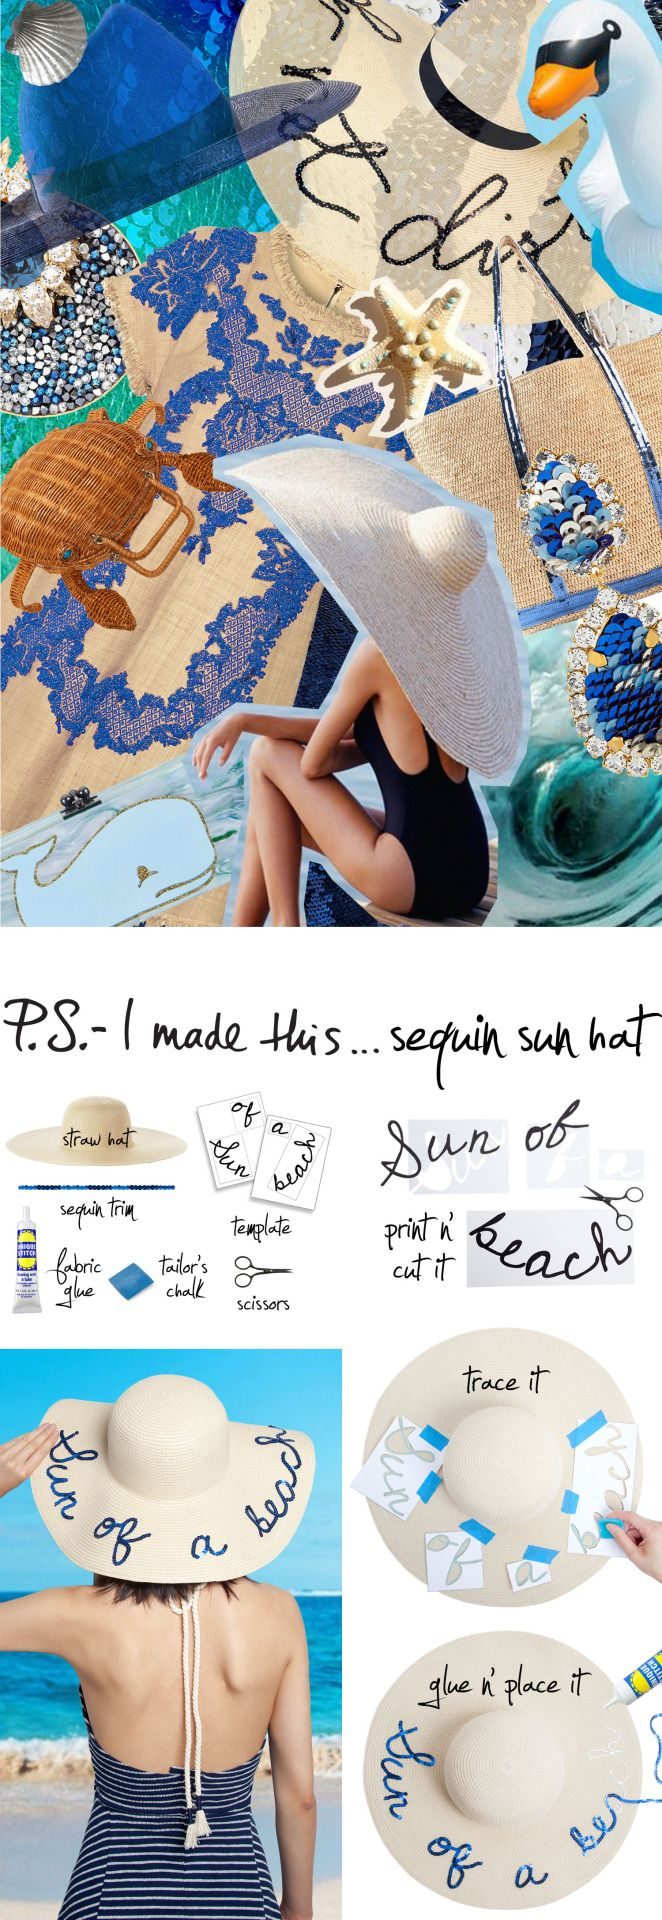 Express yourself while you SPF yourself. Inspired by Eugenia Kim's Sunny Hat, this staple floppy beach hat takes on a punchy personality with a punny DIY message. Grab some sequins and hit the beach!